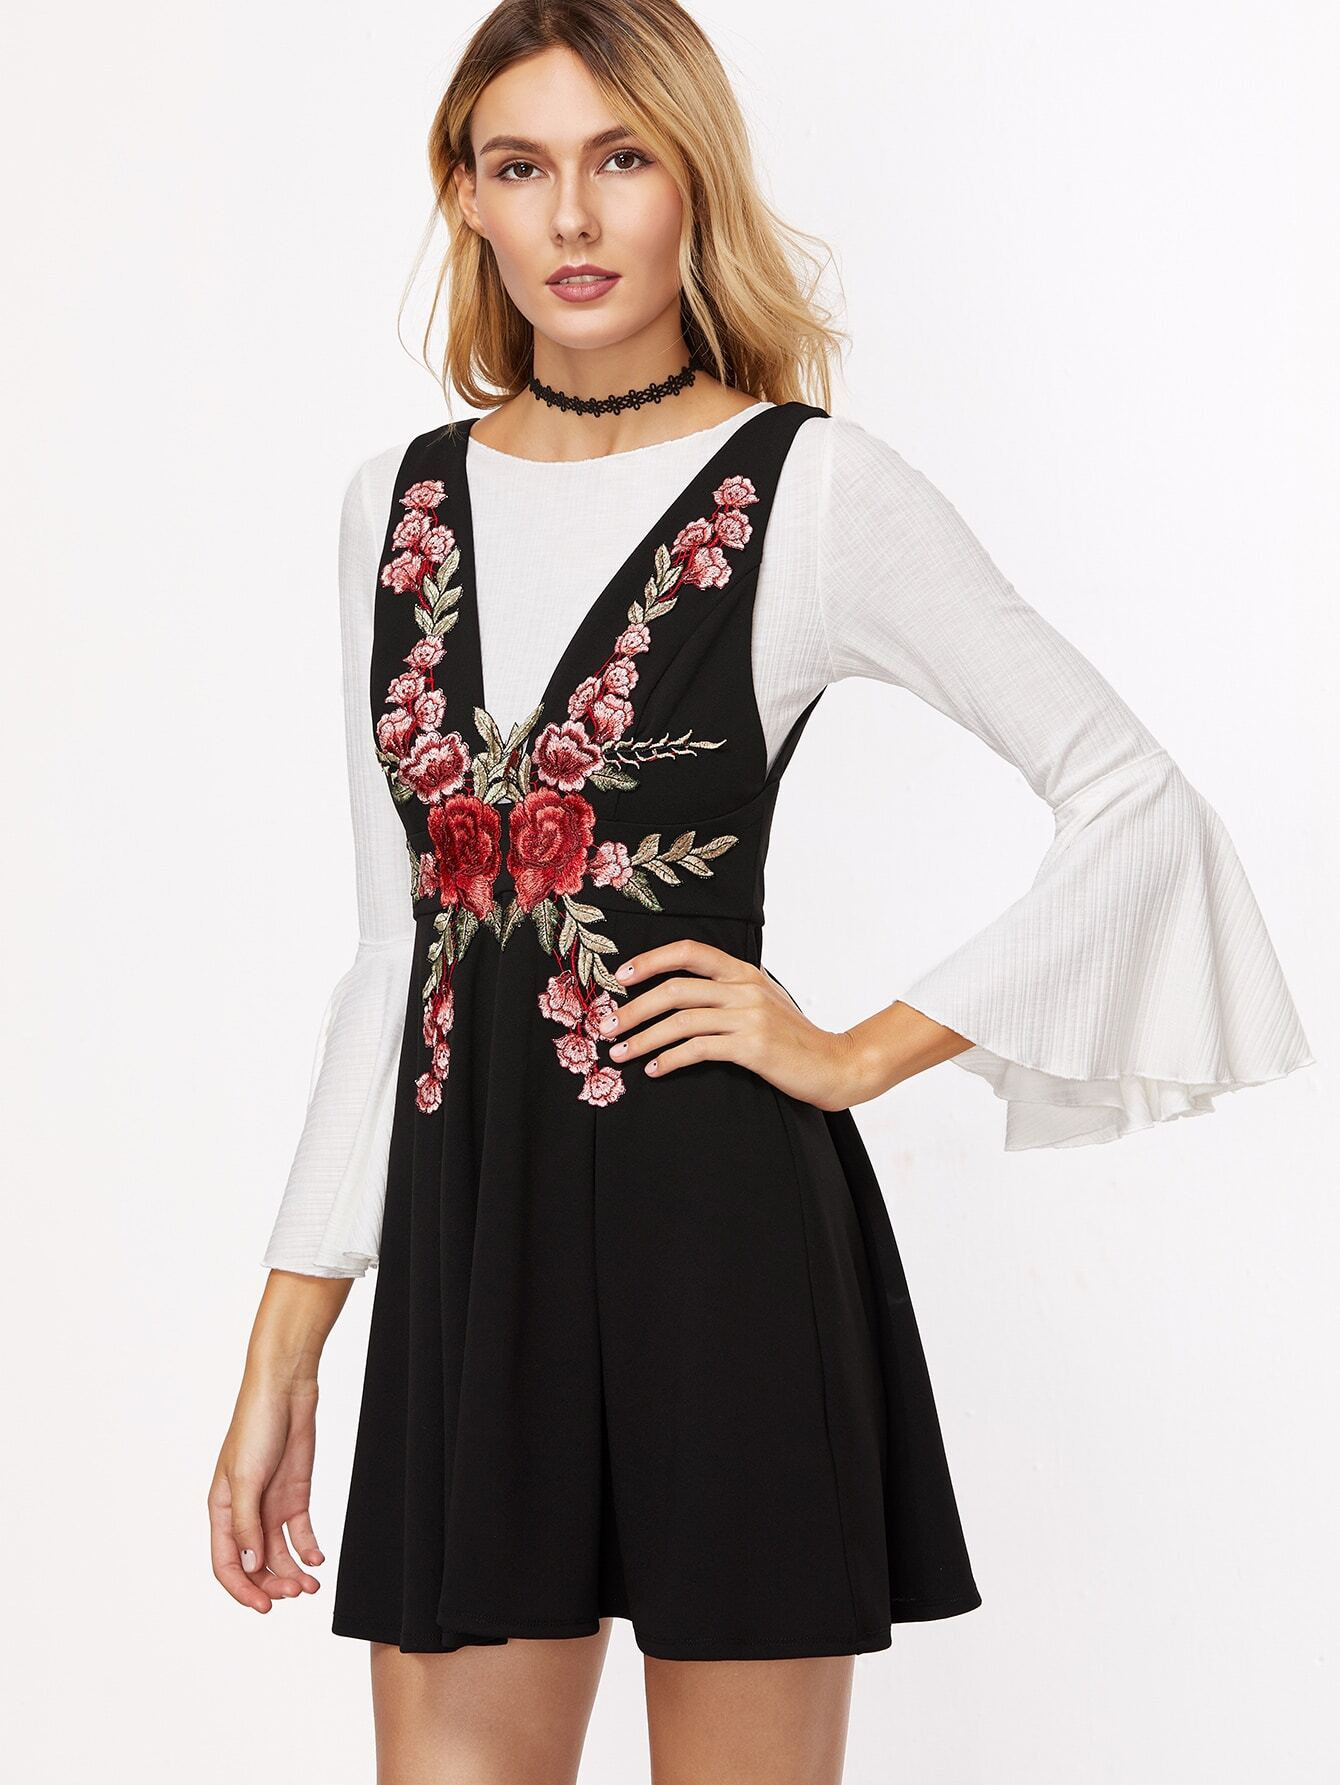 Black Flower Embroidered Double V Neck Sleeveless Skater DressBlack Flower Embroidered Double V Neck Sleeveless Skater Dress<br><br>color: Black<br>size: L,M